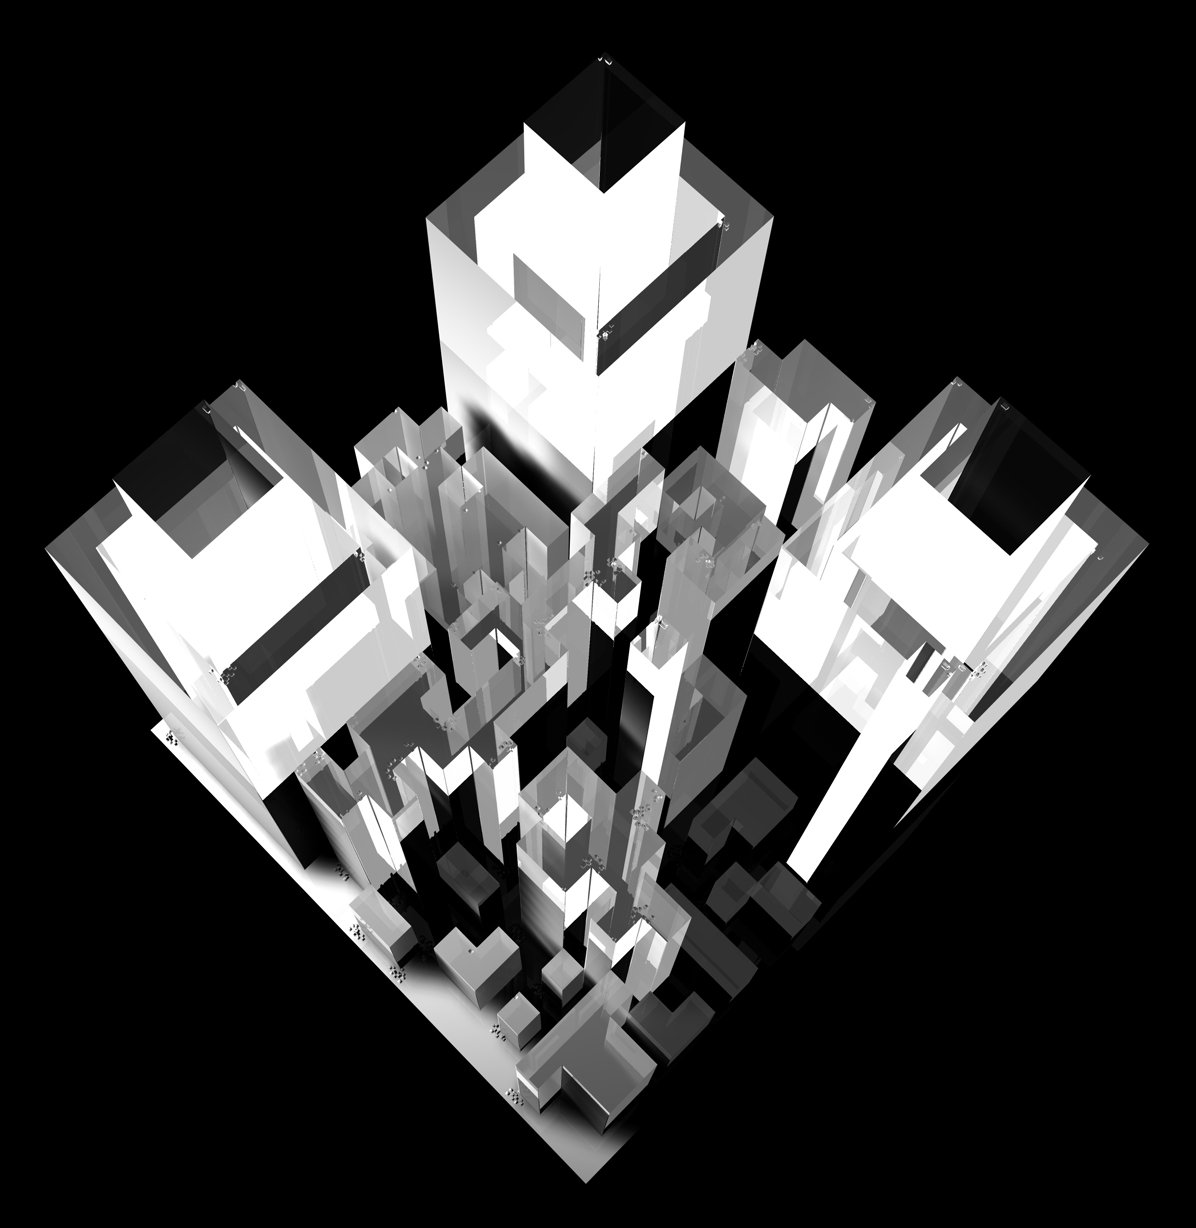 study for top scannable love qrcode city